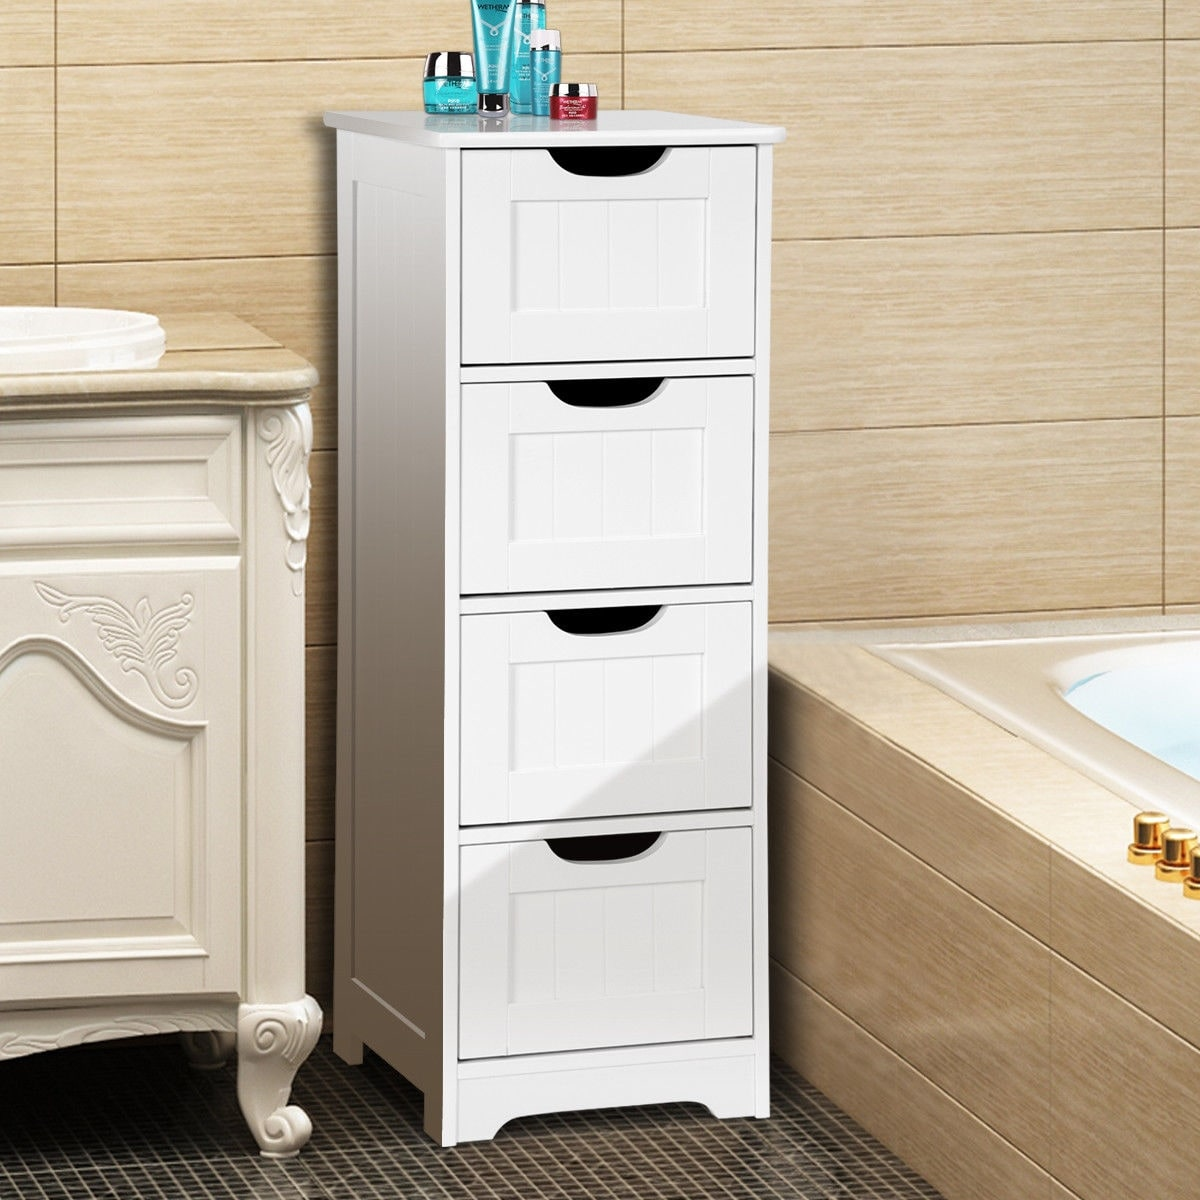 Gymax Bathroom Floor Cabinet Wooden Free Standing Storage Side Organizer W 4 Drawers Shipping Today 22827562